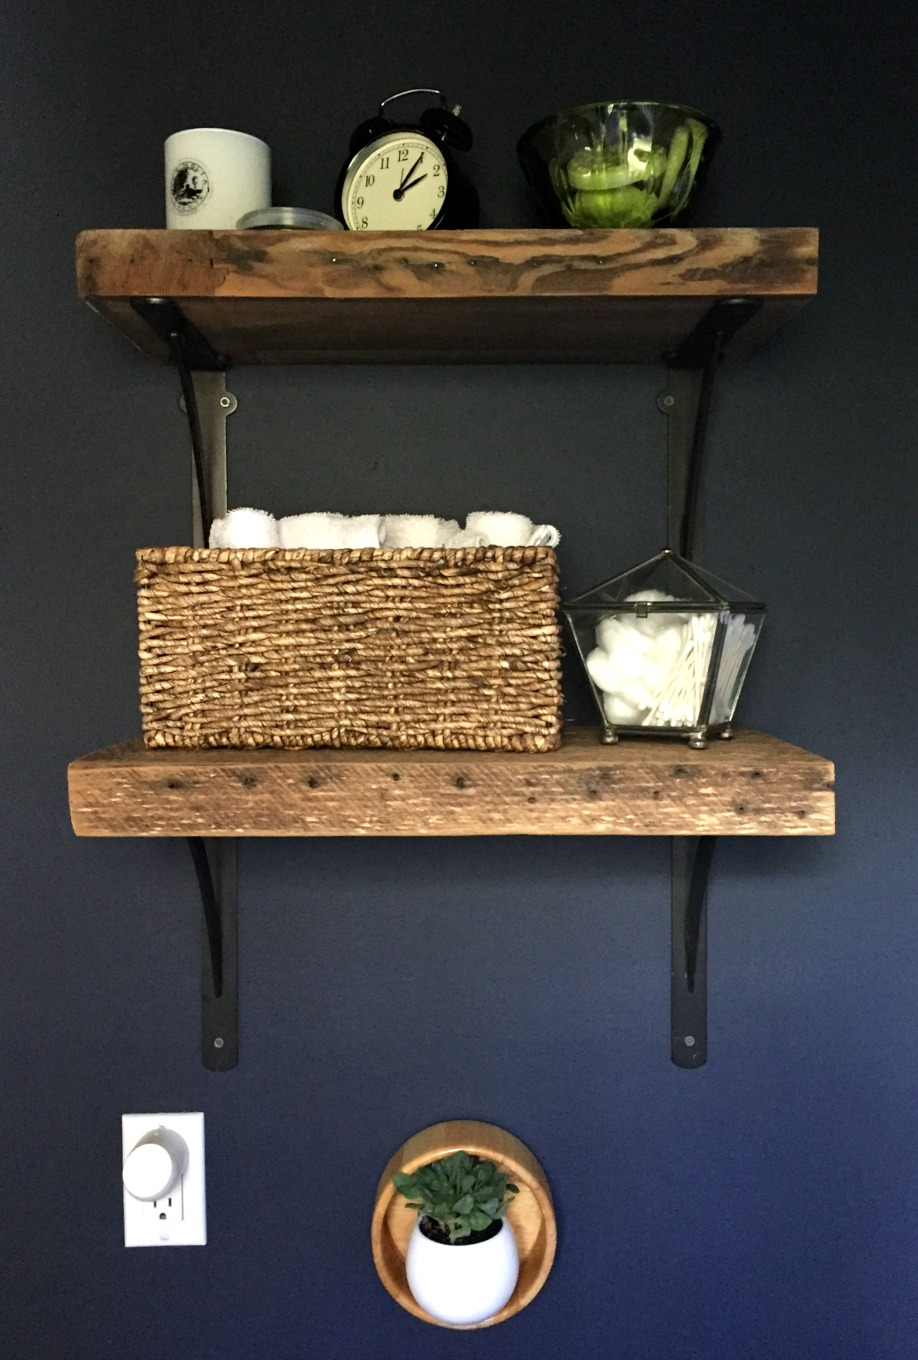 Finished reclaimed wood shelves - Guest bathroom makeover reveal - thediybungalow.com